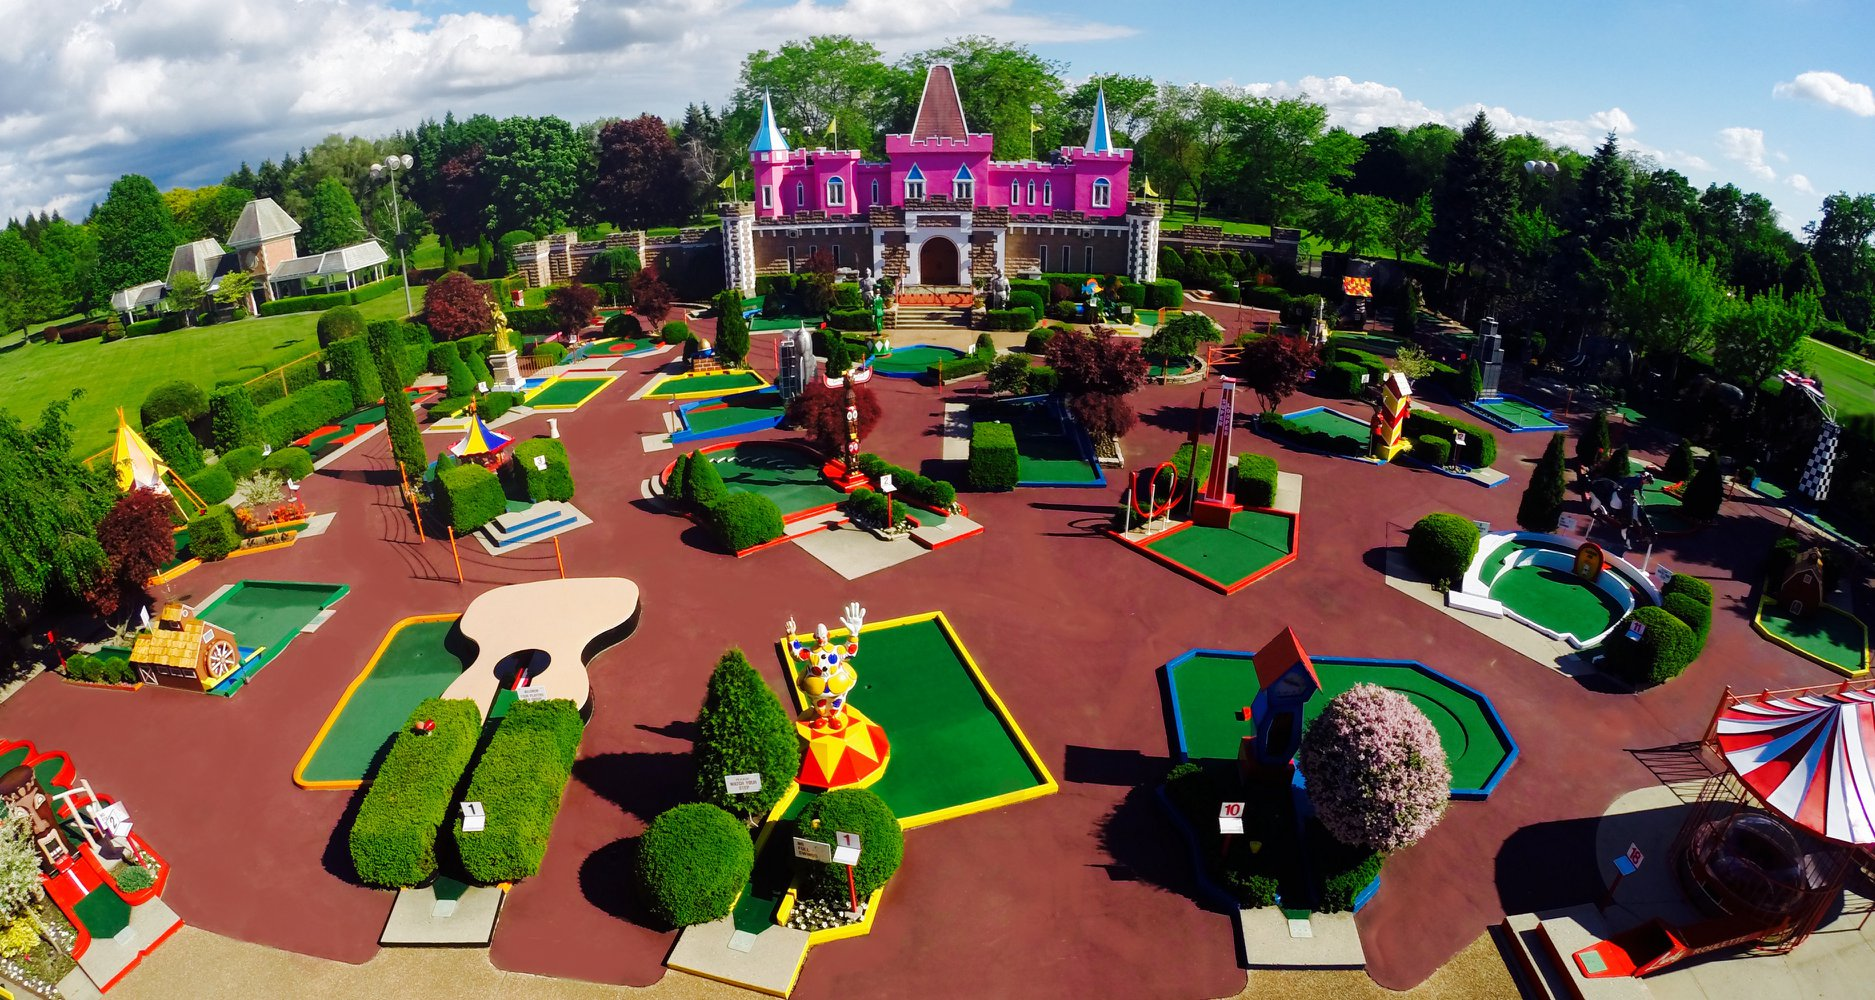 Mini-Golf Courses In The US: Camping Near Putt Putt Courses